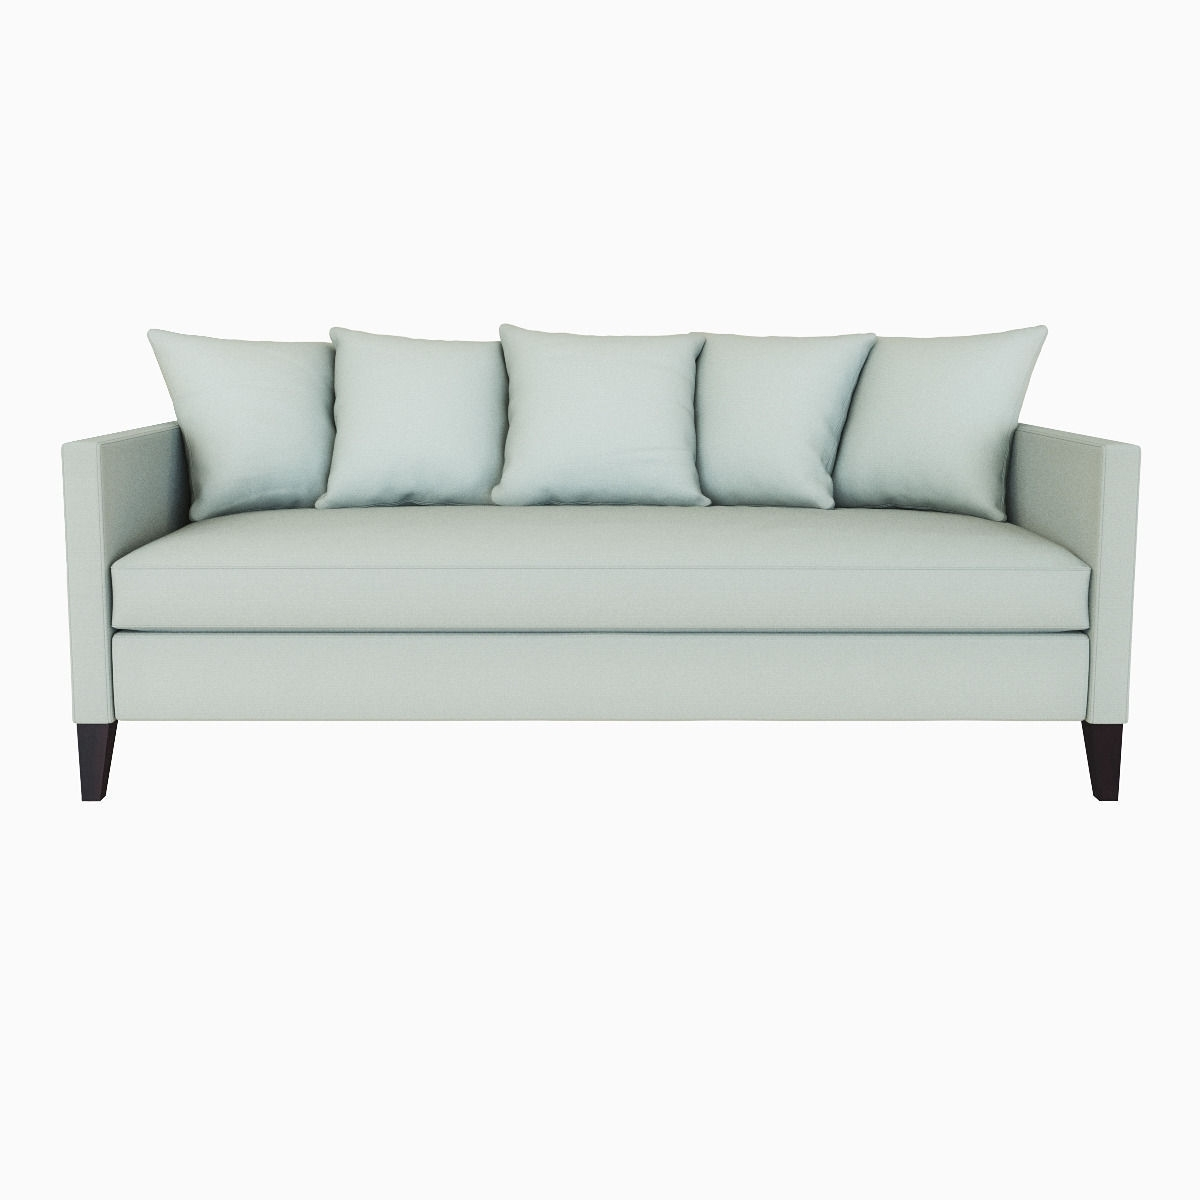 Popular West Elm Dunham Down Filled Sofa – Toss Back 3D Model Max Obj Fbx Mtl Within Down Filled Sofas (View 20 of 20)